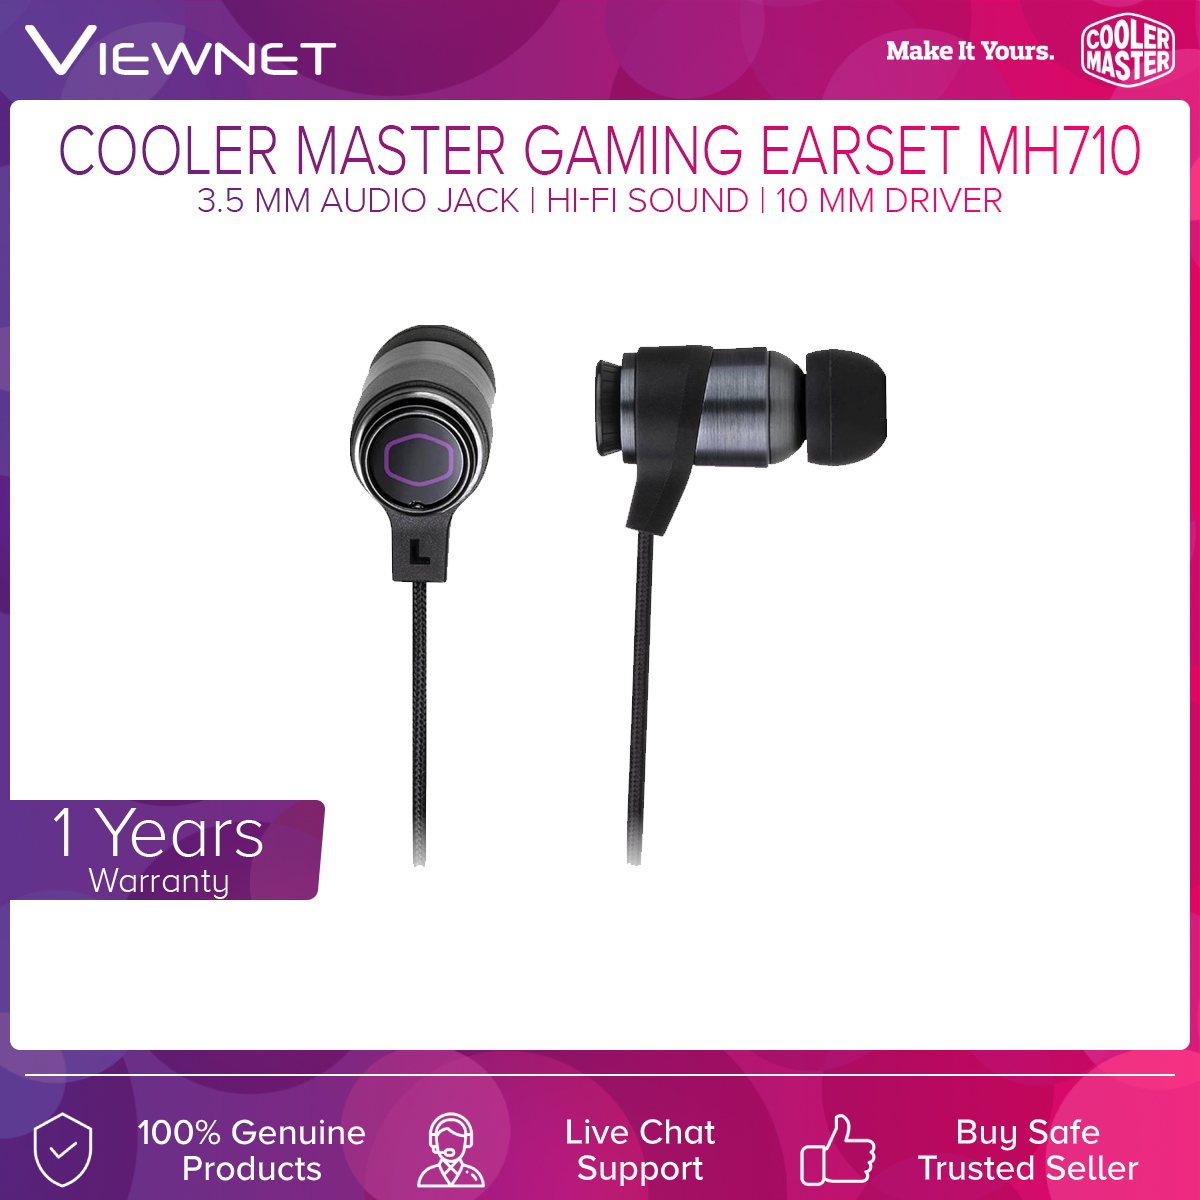 Cooler Master MH710 In-Ear Gaming Headphones with Focus FX 2.0 Technology (MH-710)